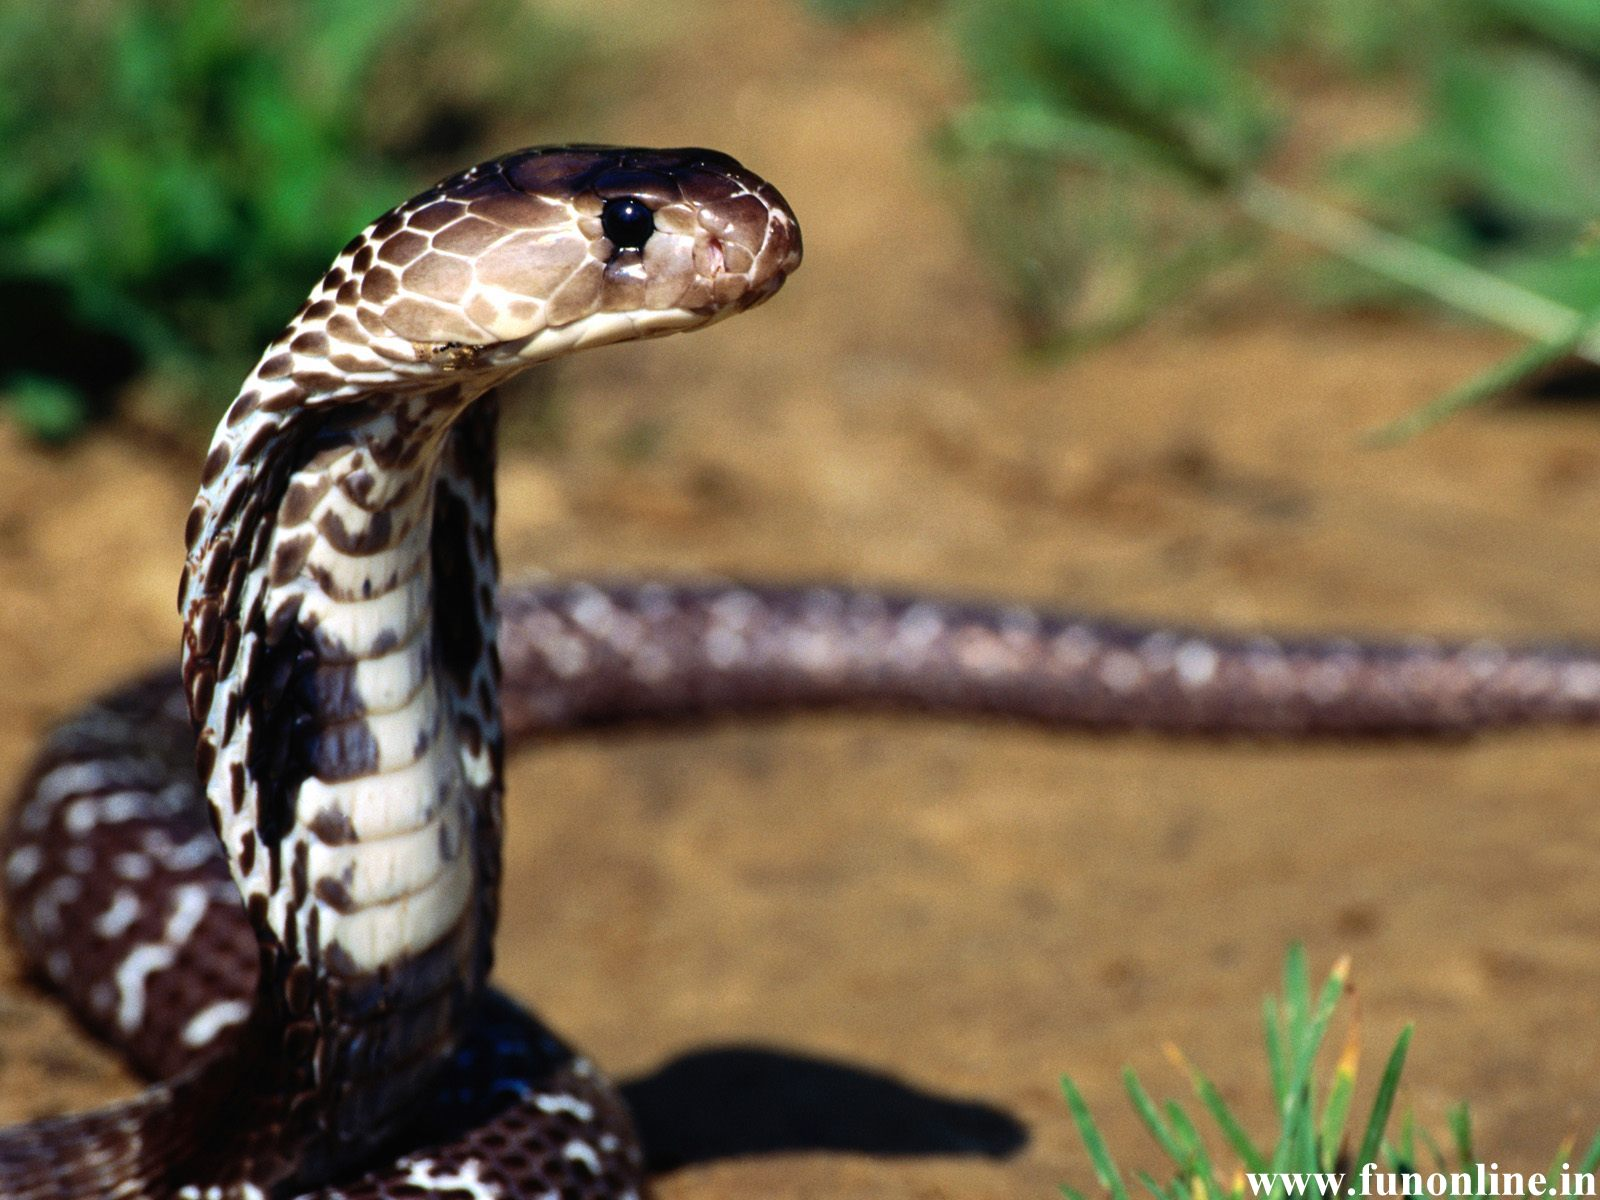 snake wallpapers download poisonous deadly snakes hd wallpapers 1600x1200